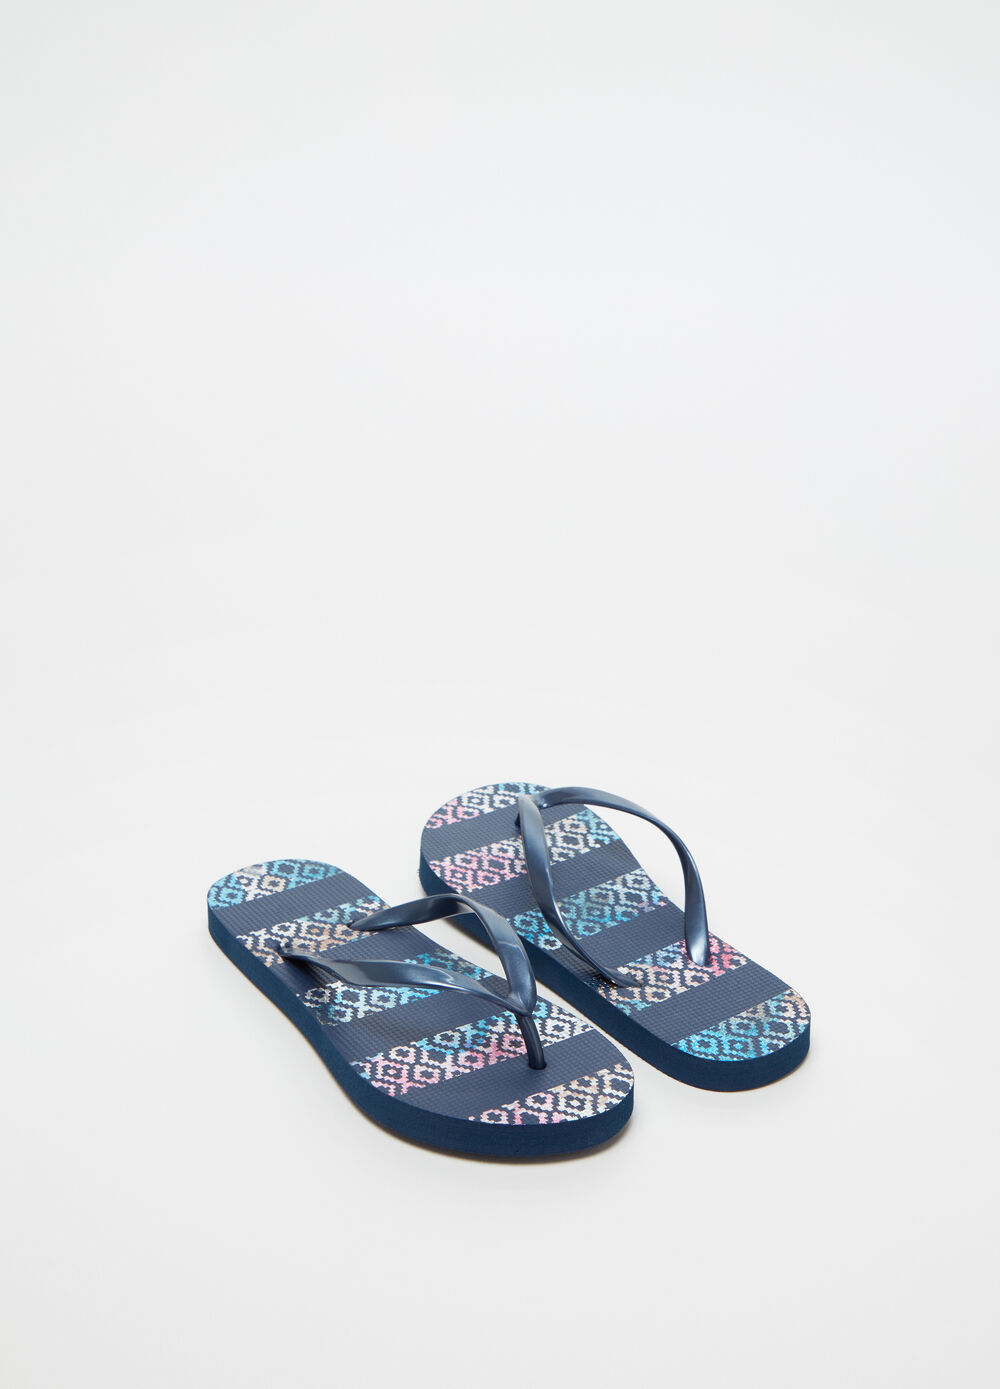 Thong sandals with geometric patterned sole and flat heel